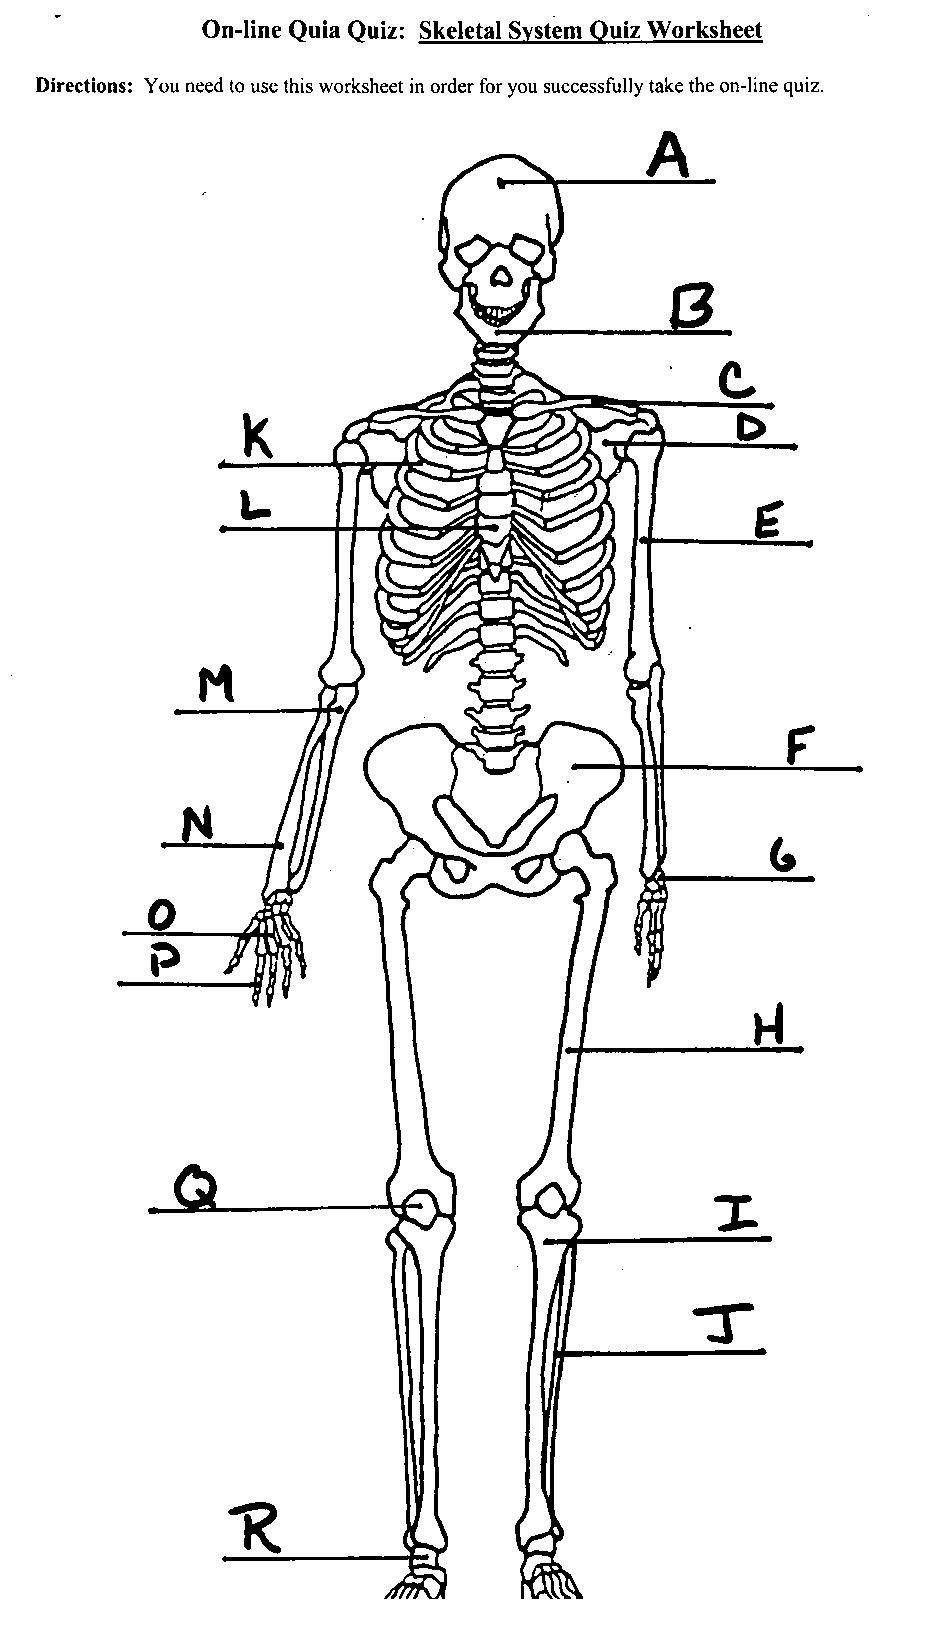 Blank Skeletal System Worksheet Unlabeled Human Skeleton Diagram Unlabeled Human Skeleton